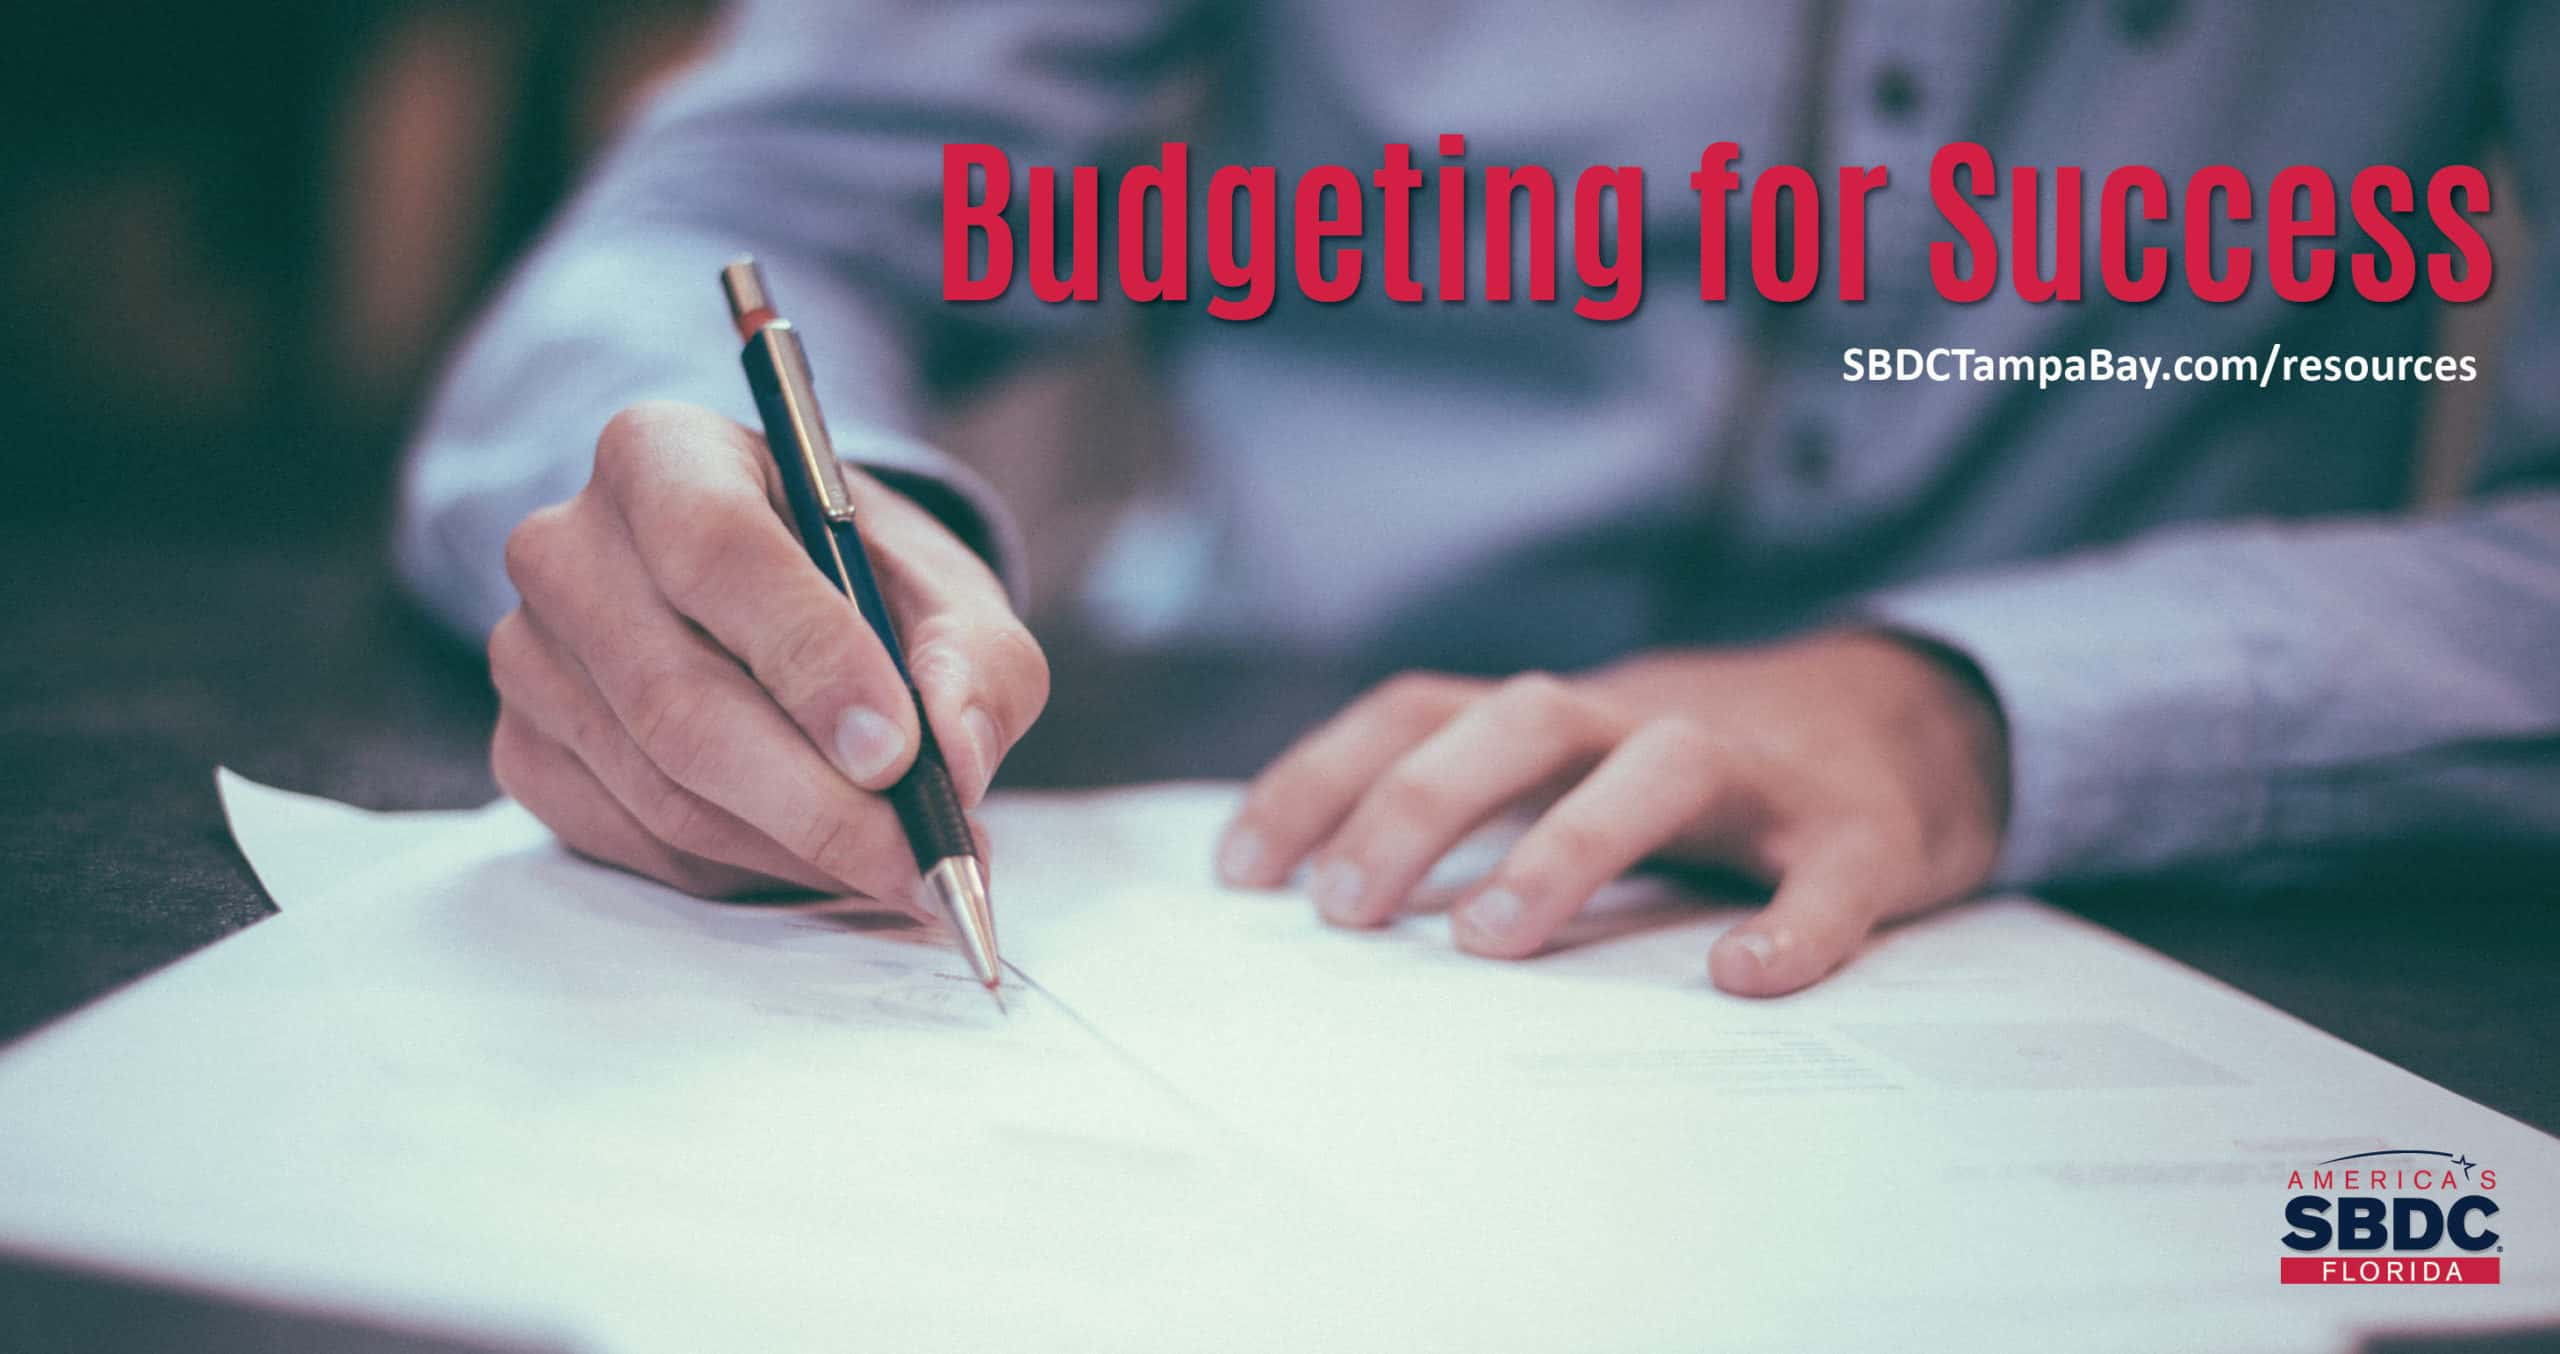 Budgeting Your Small Business for Success